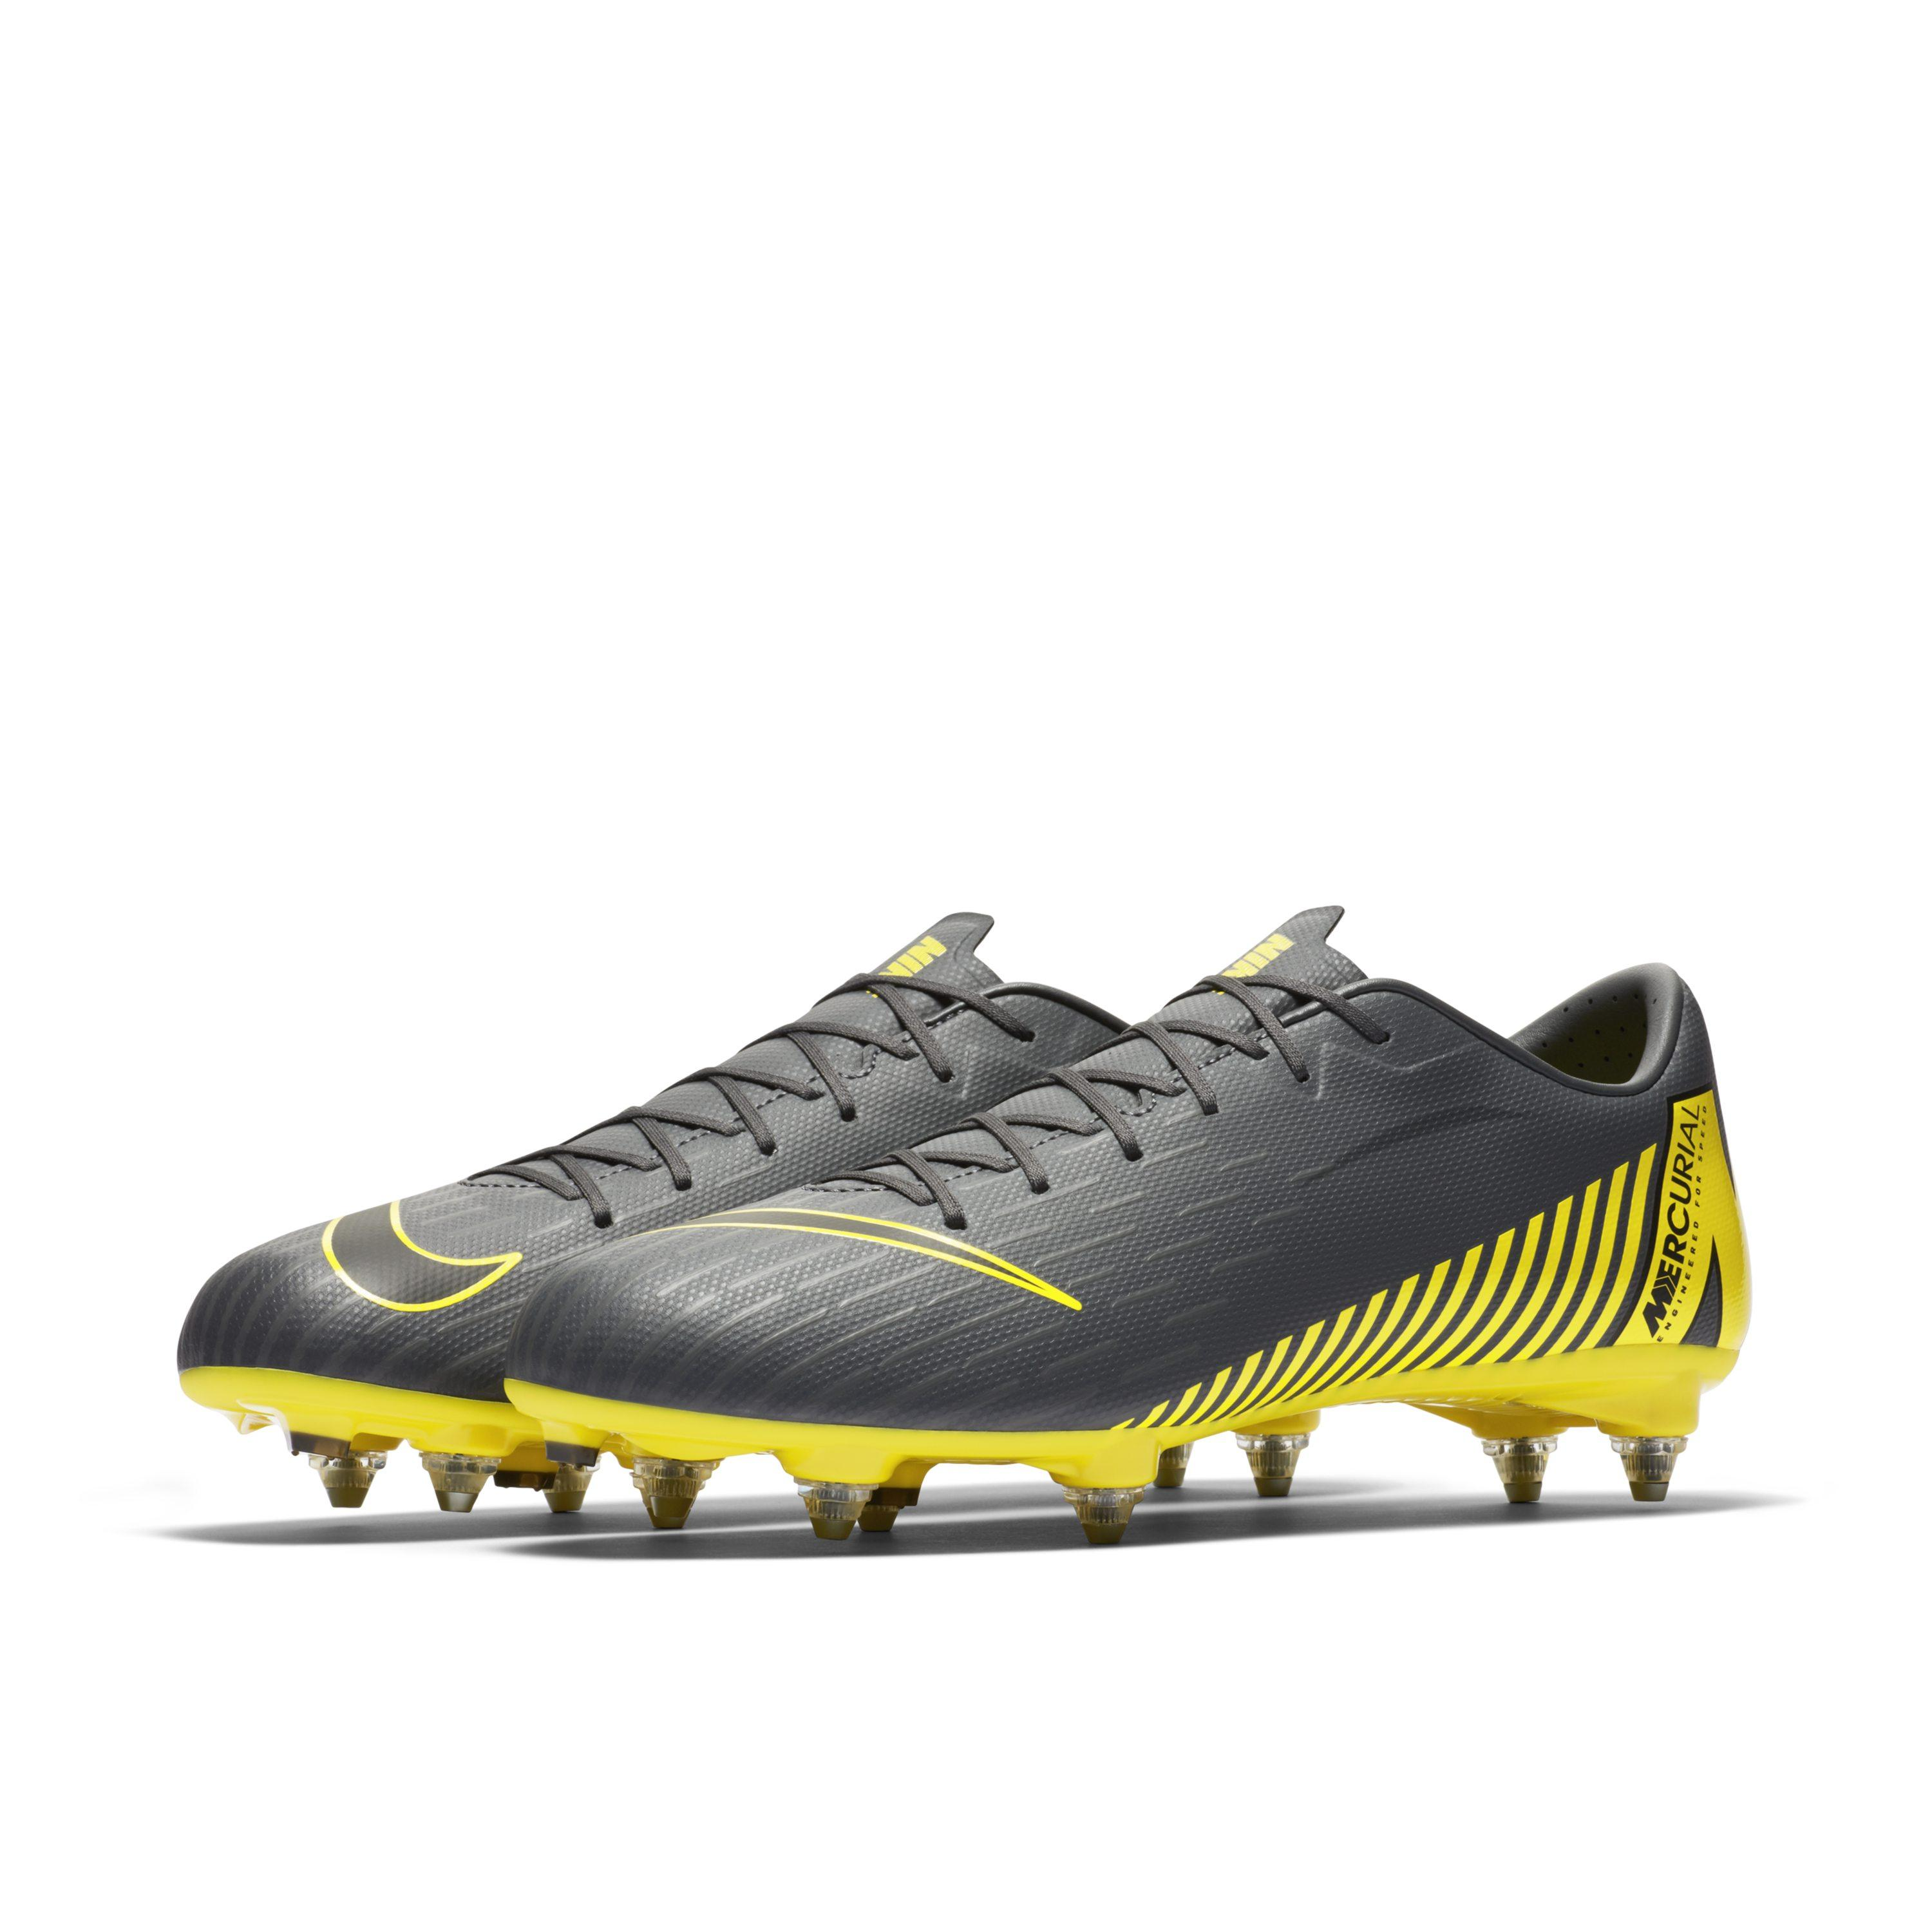 huge discount 79574 3ee43 Nike - Gray Mercurial Vapor Xii Academy Sg-pro Soft-ground Football Boot  for. View fullscreen